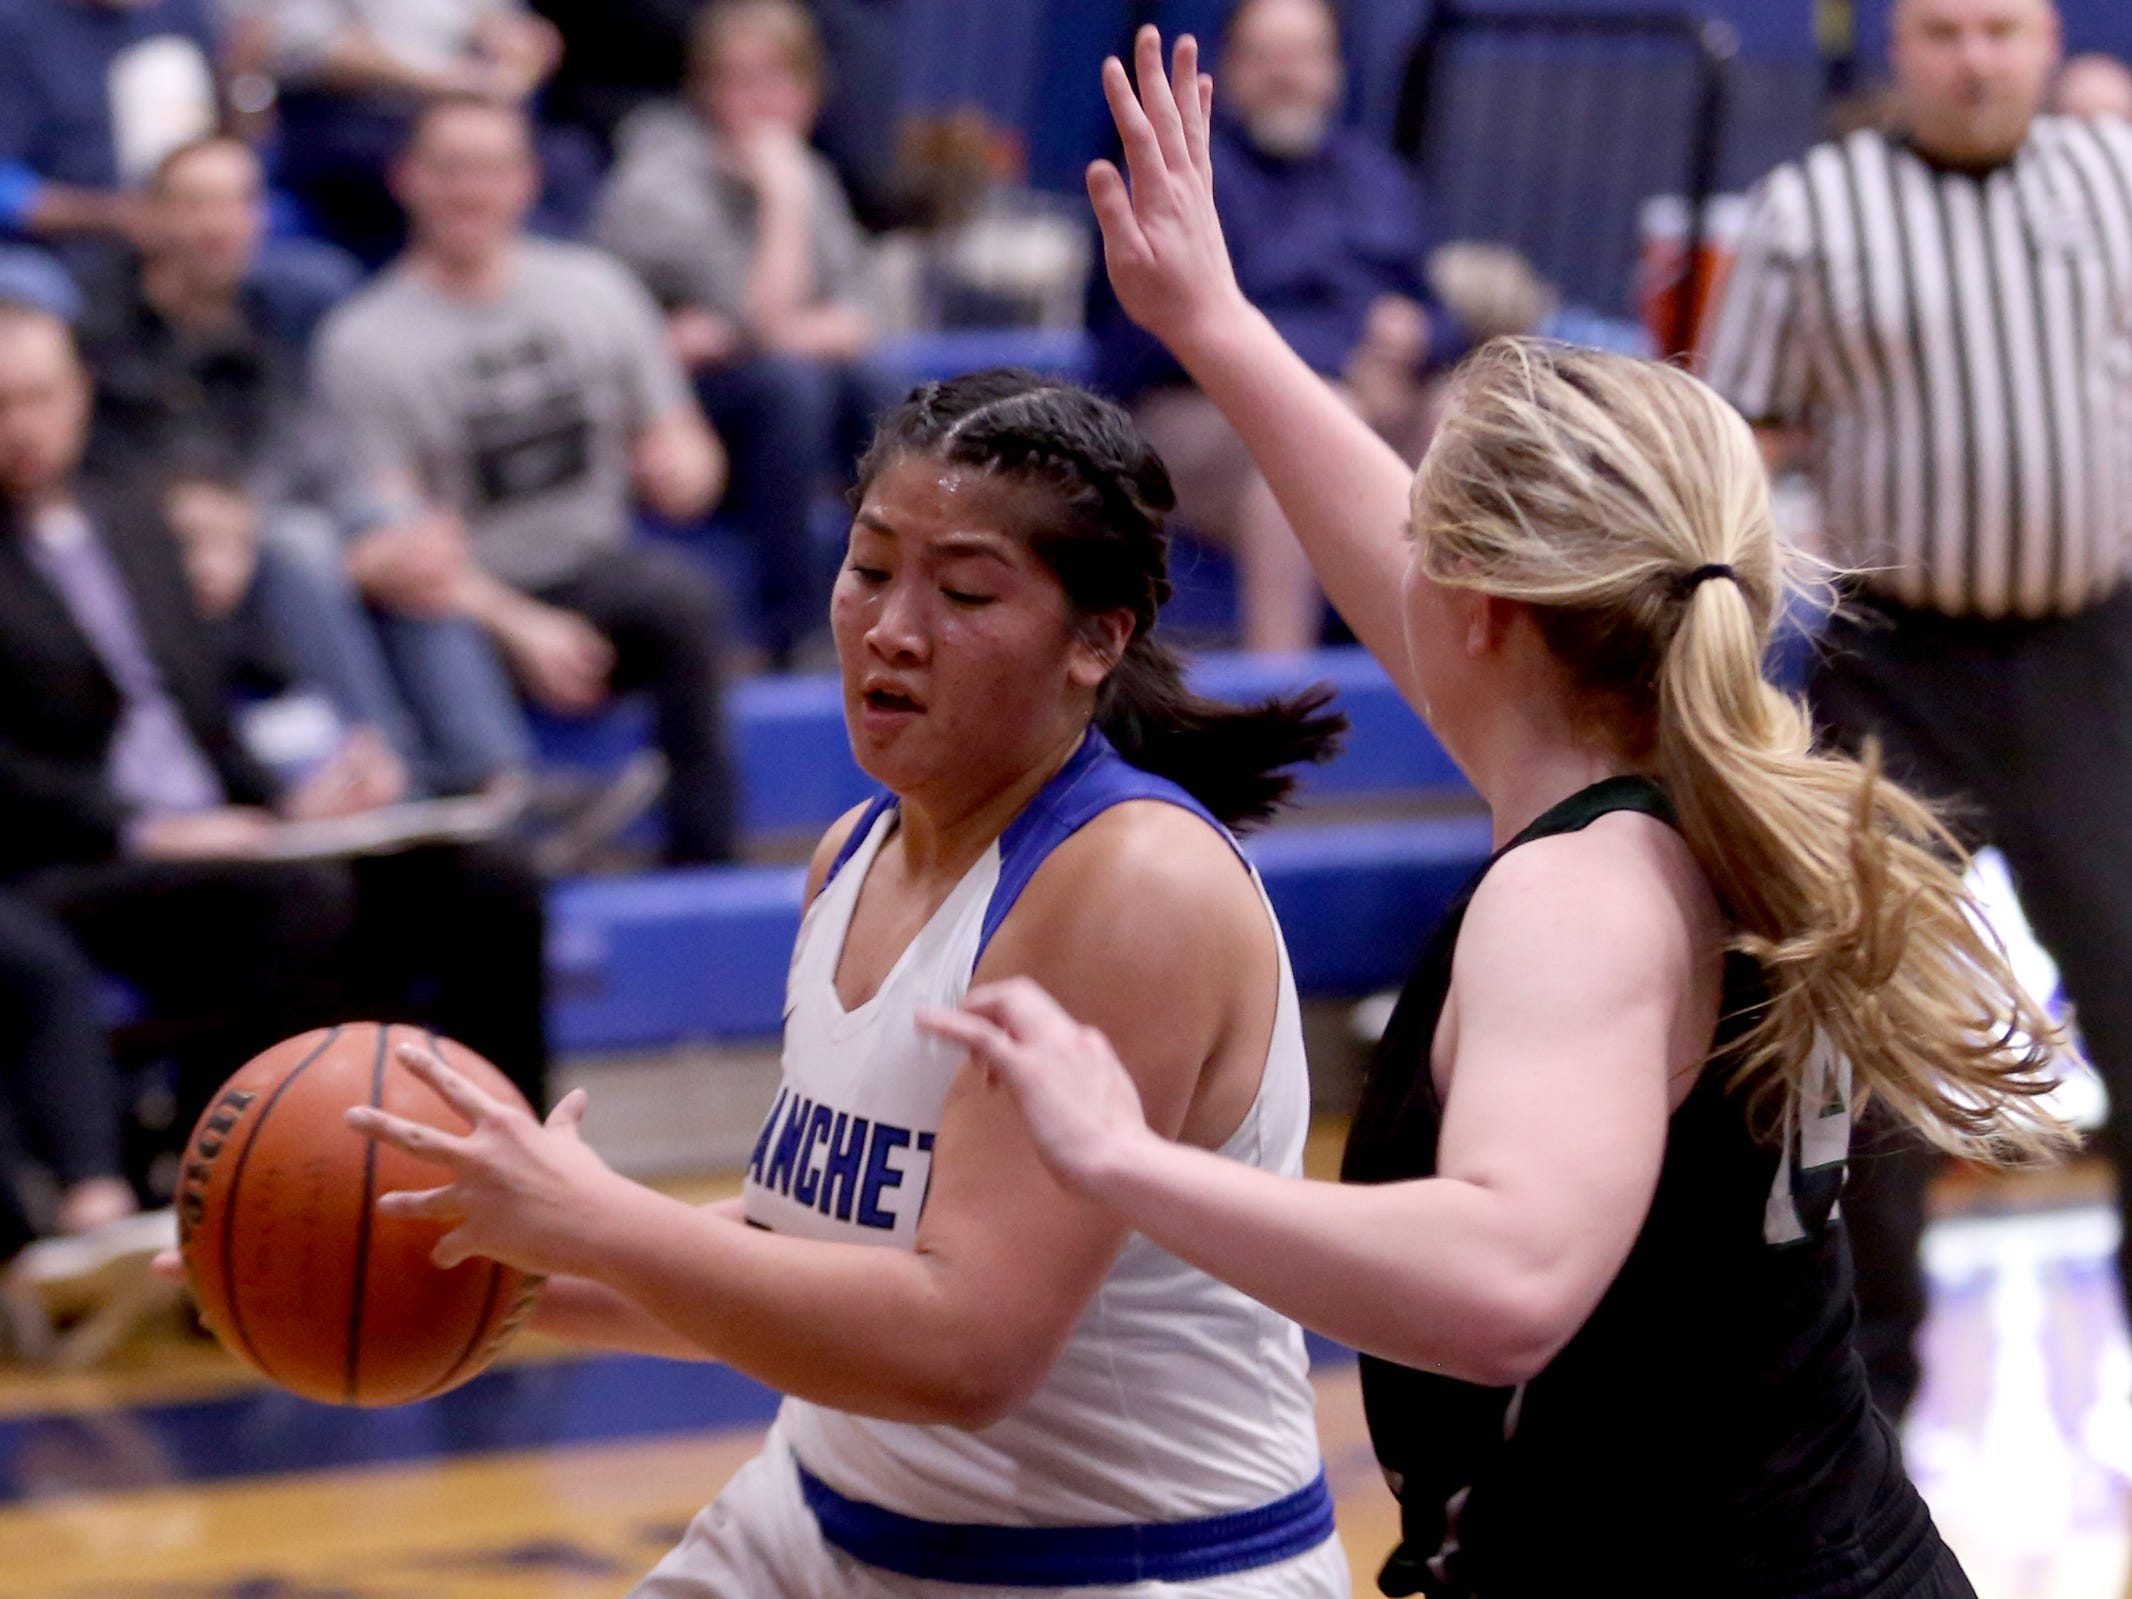 Blanchet Catholic's Kalea Salang (30) moves around Salem Academy's Grace Brown (14) in the second half of the Salem Academy vs. Blanchet Catholic girls basketball game at Blanchet Catholic School in Salem on Friday, Jan. 18, 2019. Blanchet Catholic won the gam 48-40.